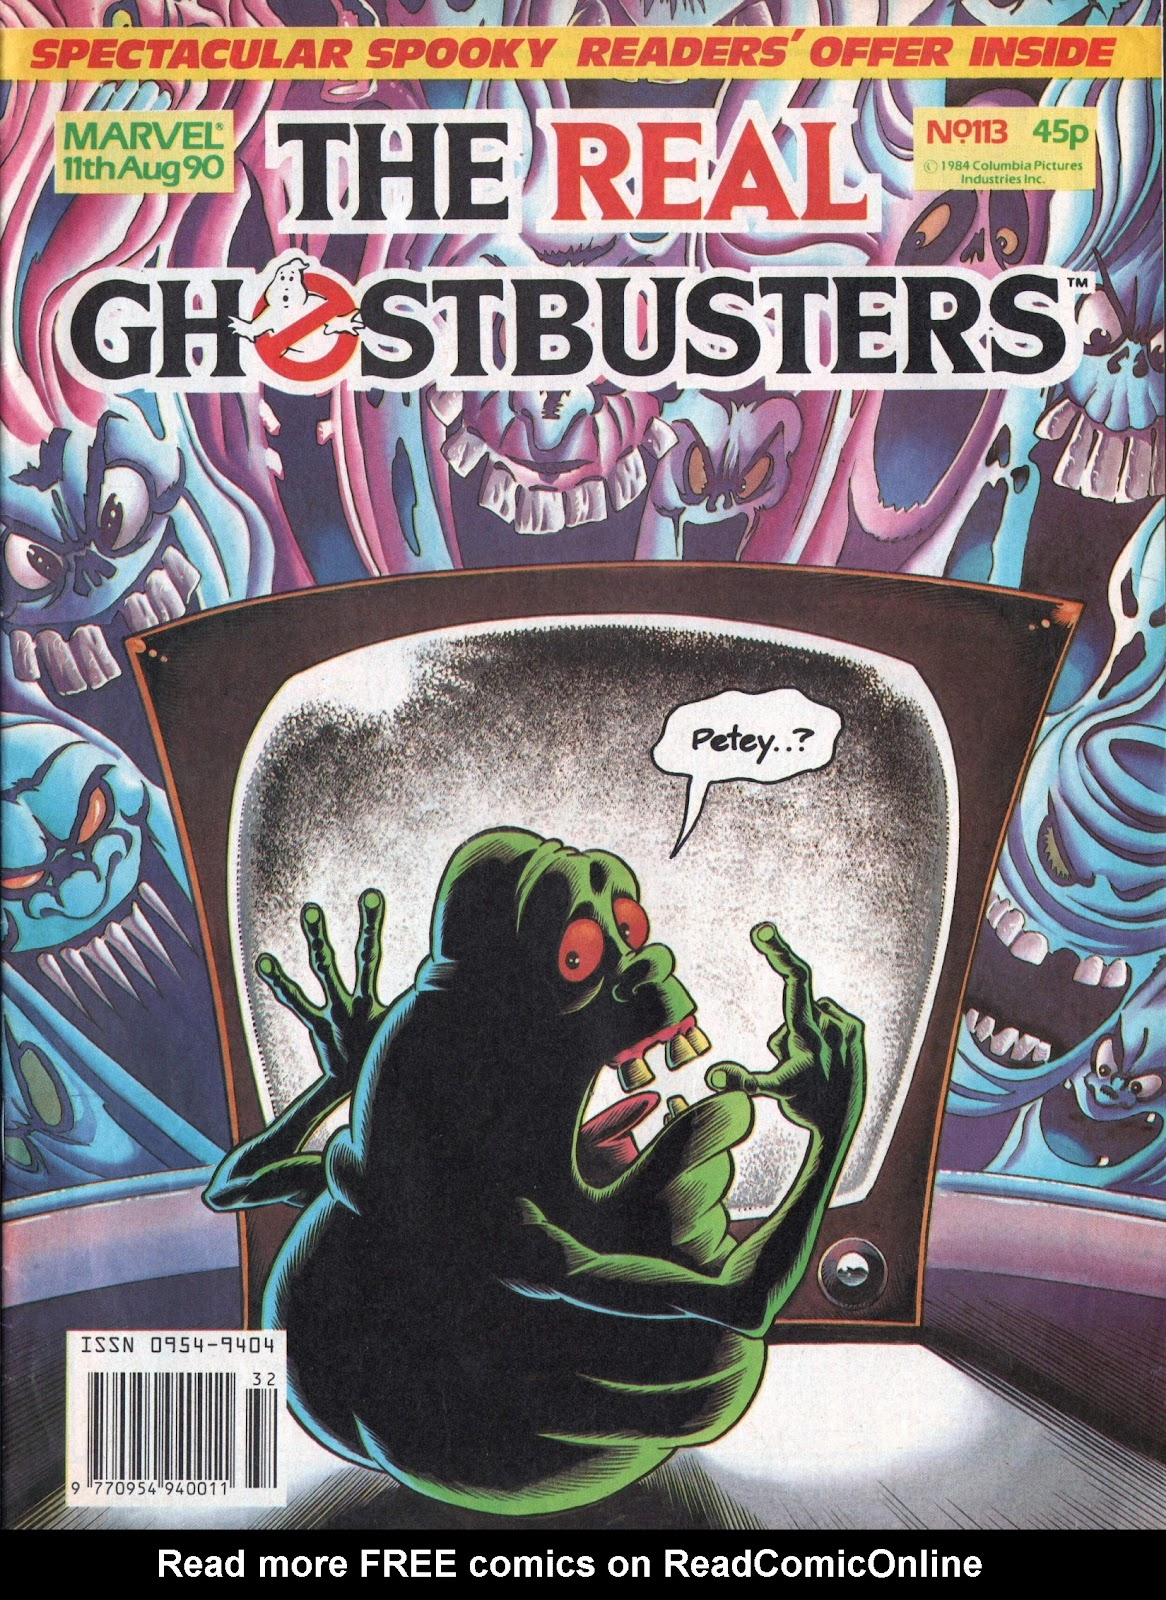 The Real Ghostbusters 113 Page 1